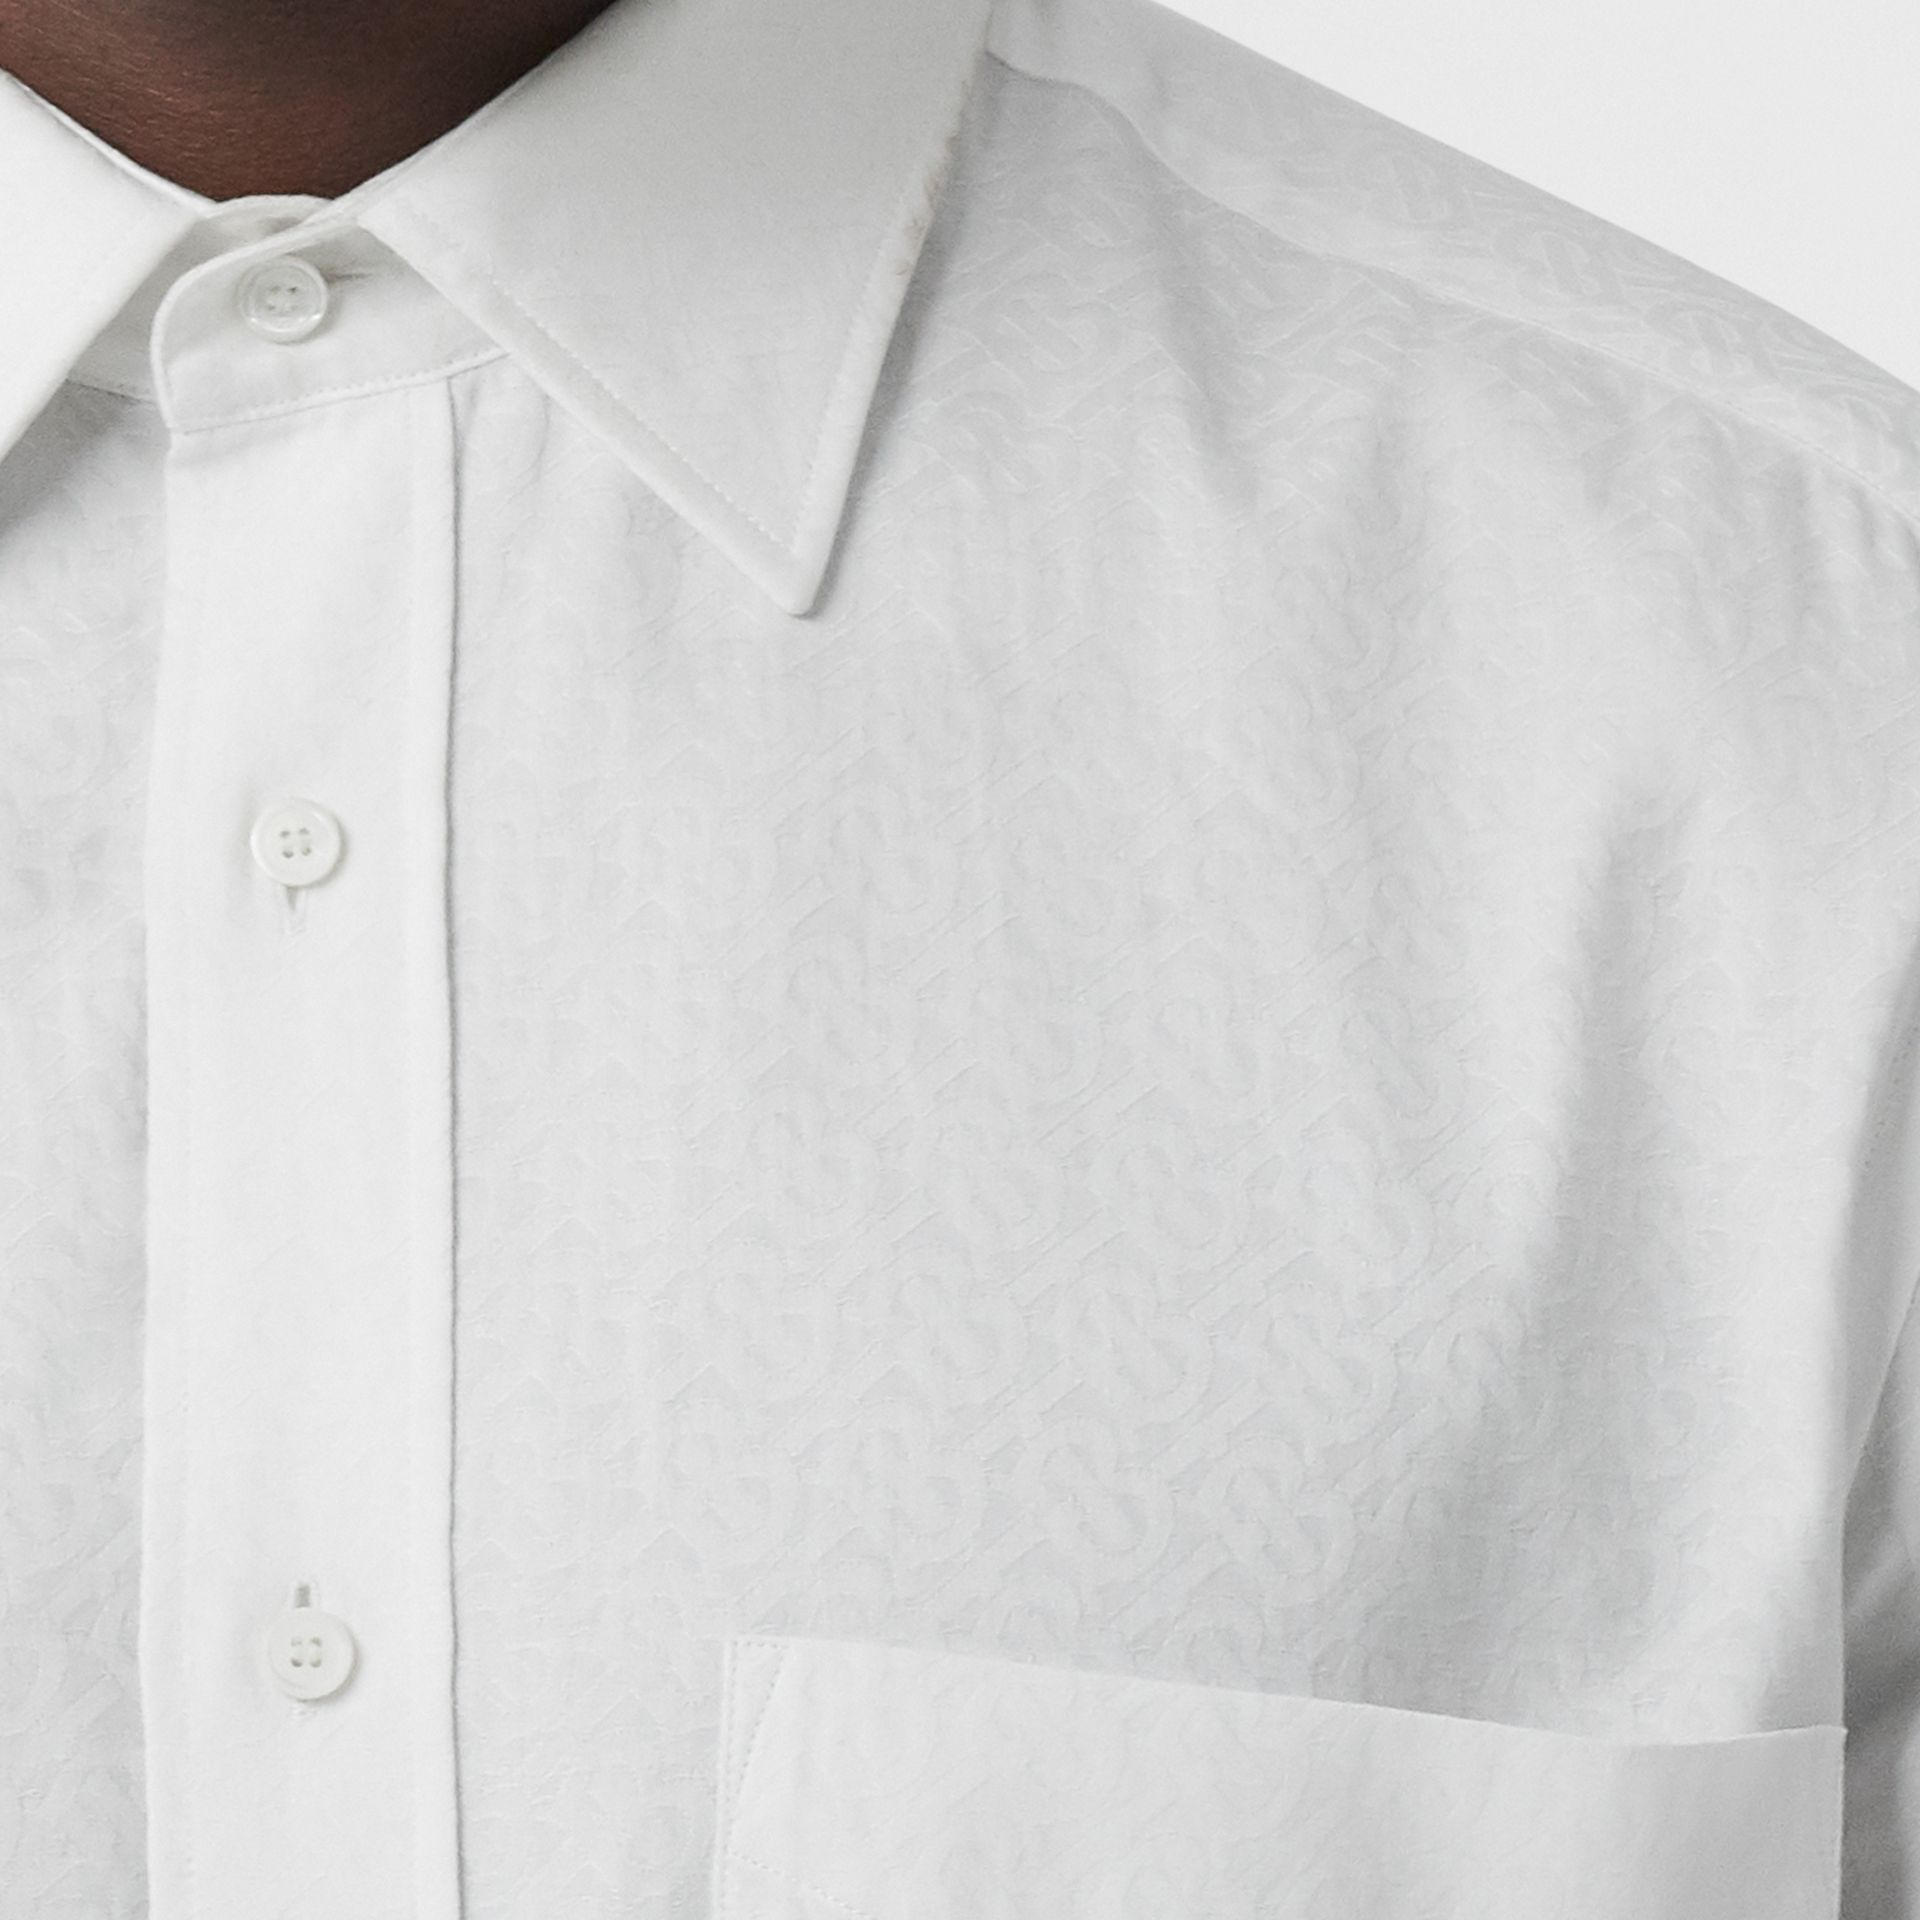 Classic Fit Monogram Cotton Jacquard Shirt in White - Men | Burberry Canada - gallery image 4